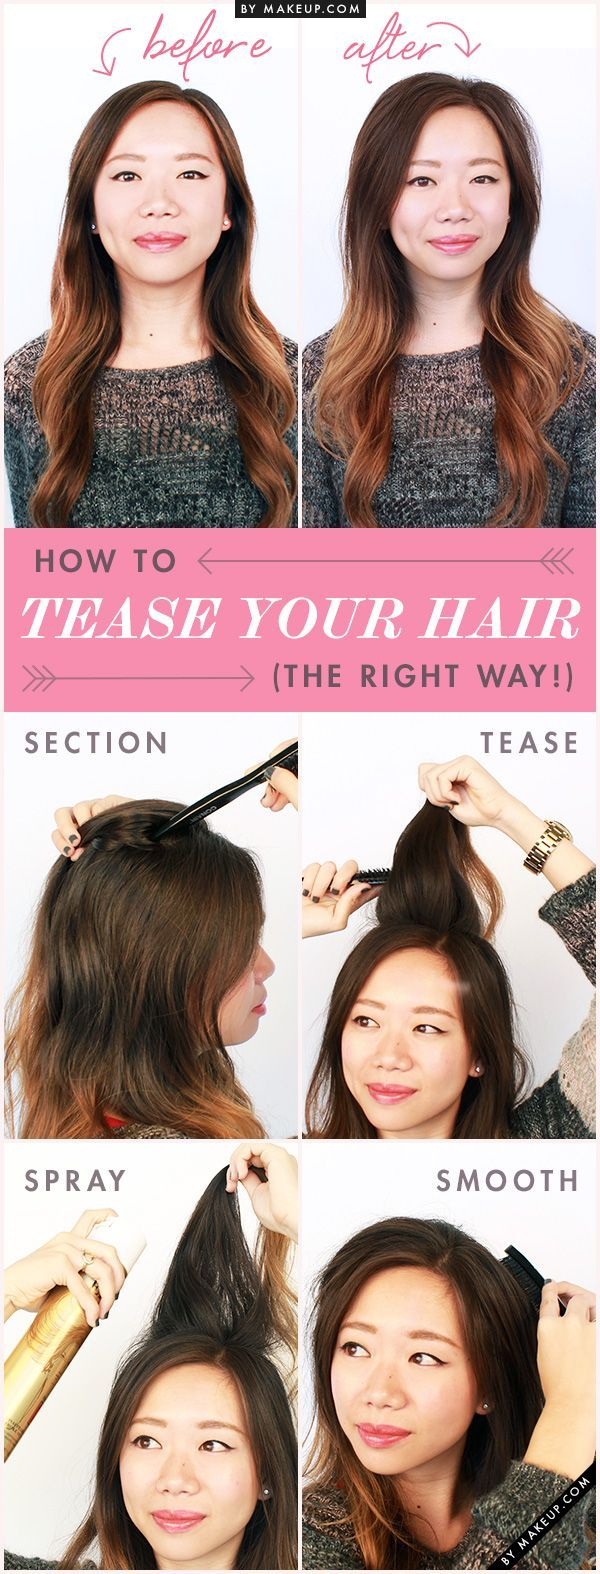 HOW TO: TEASE YOUR HAIR - THE RIGHT WAY